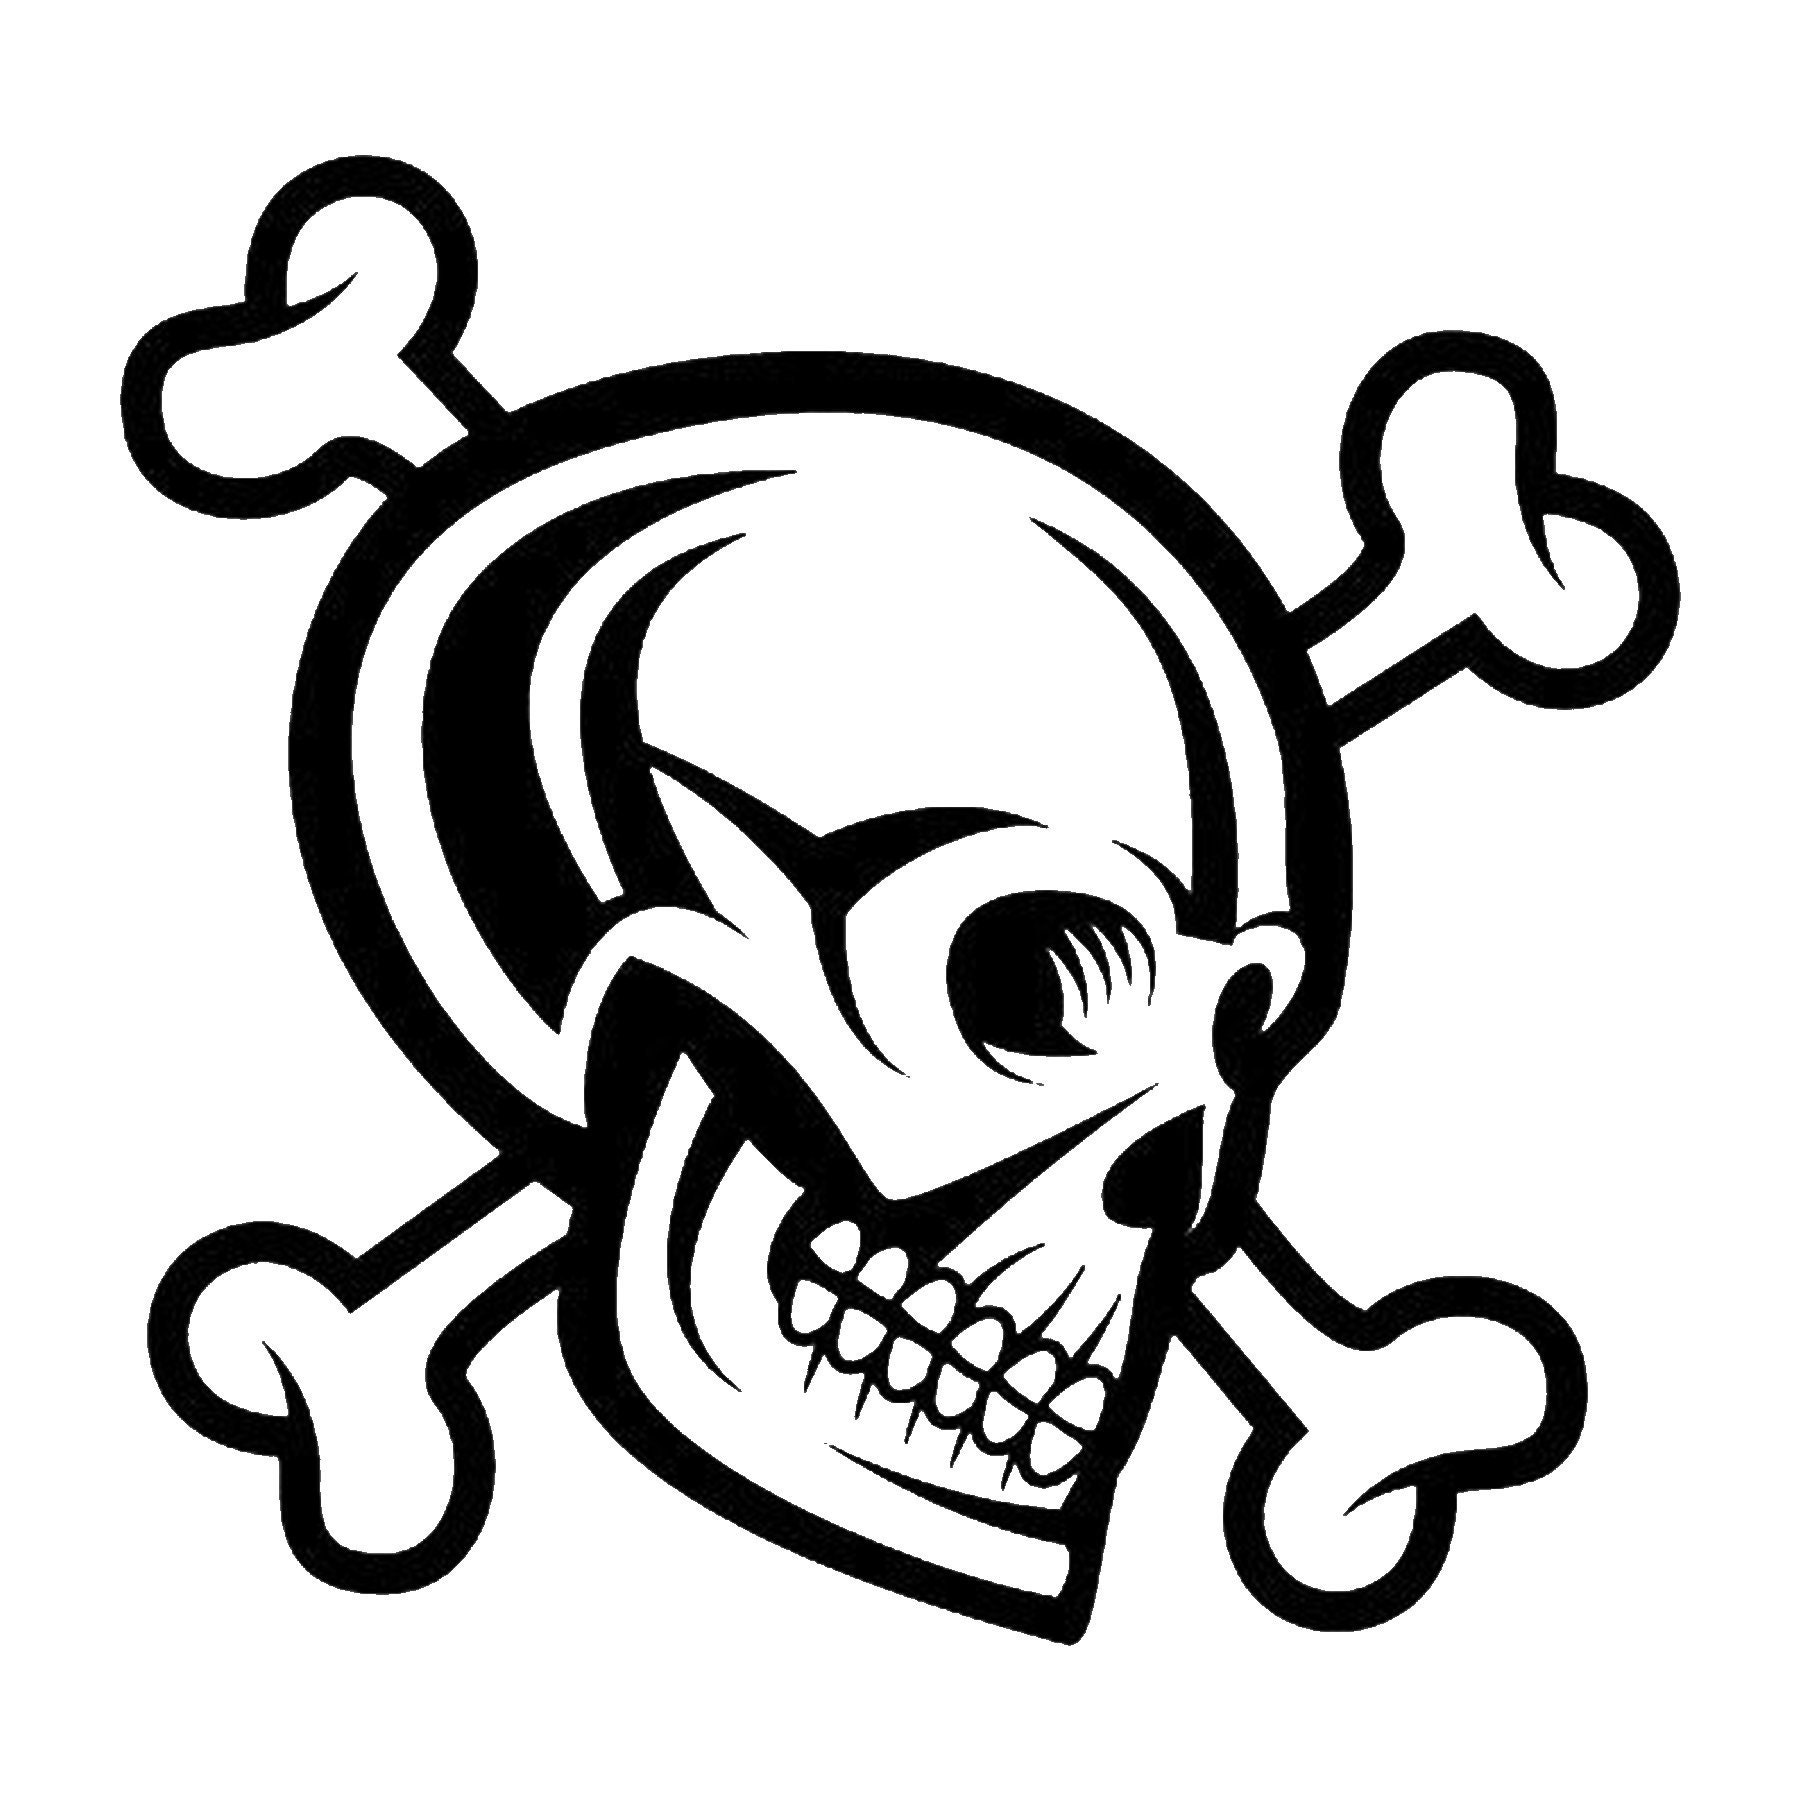 CAD$8.69 - Skull Cross Bones Vinyl Decal - various sizes and colors - colours